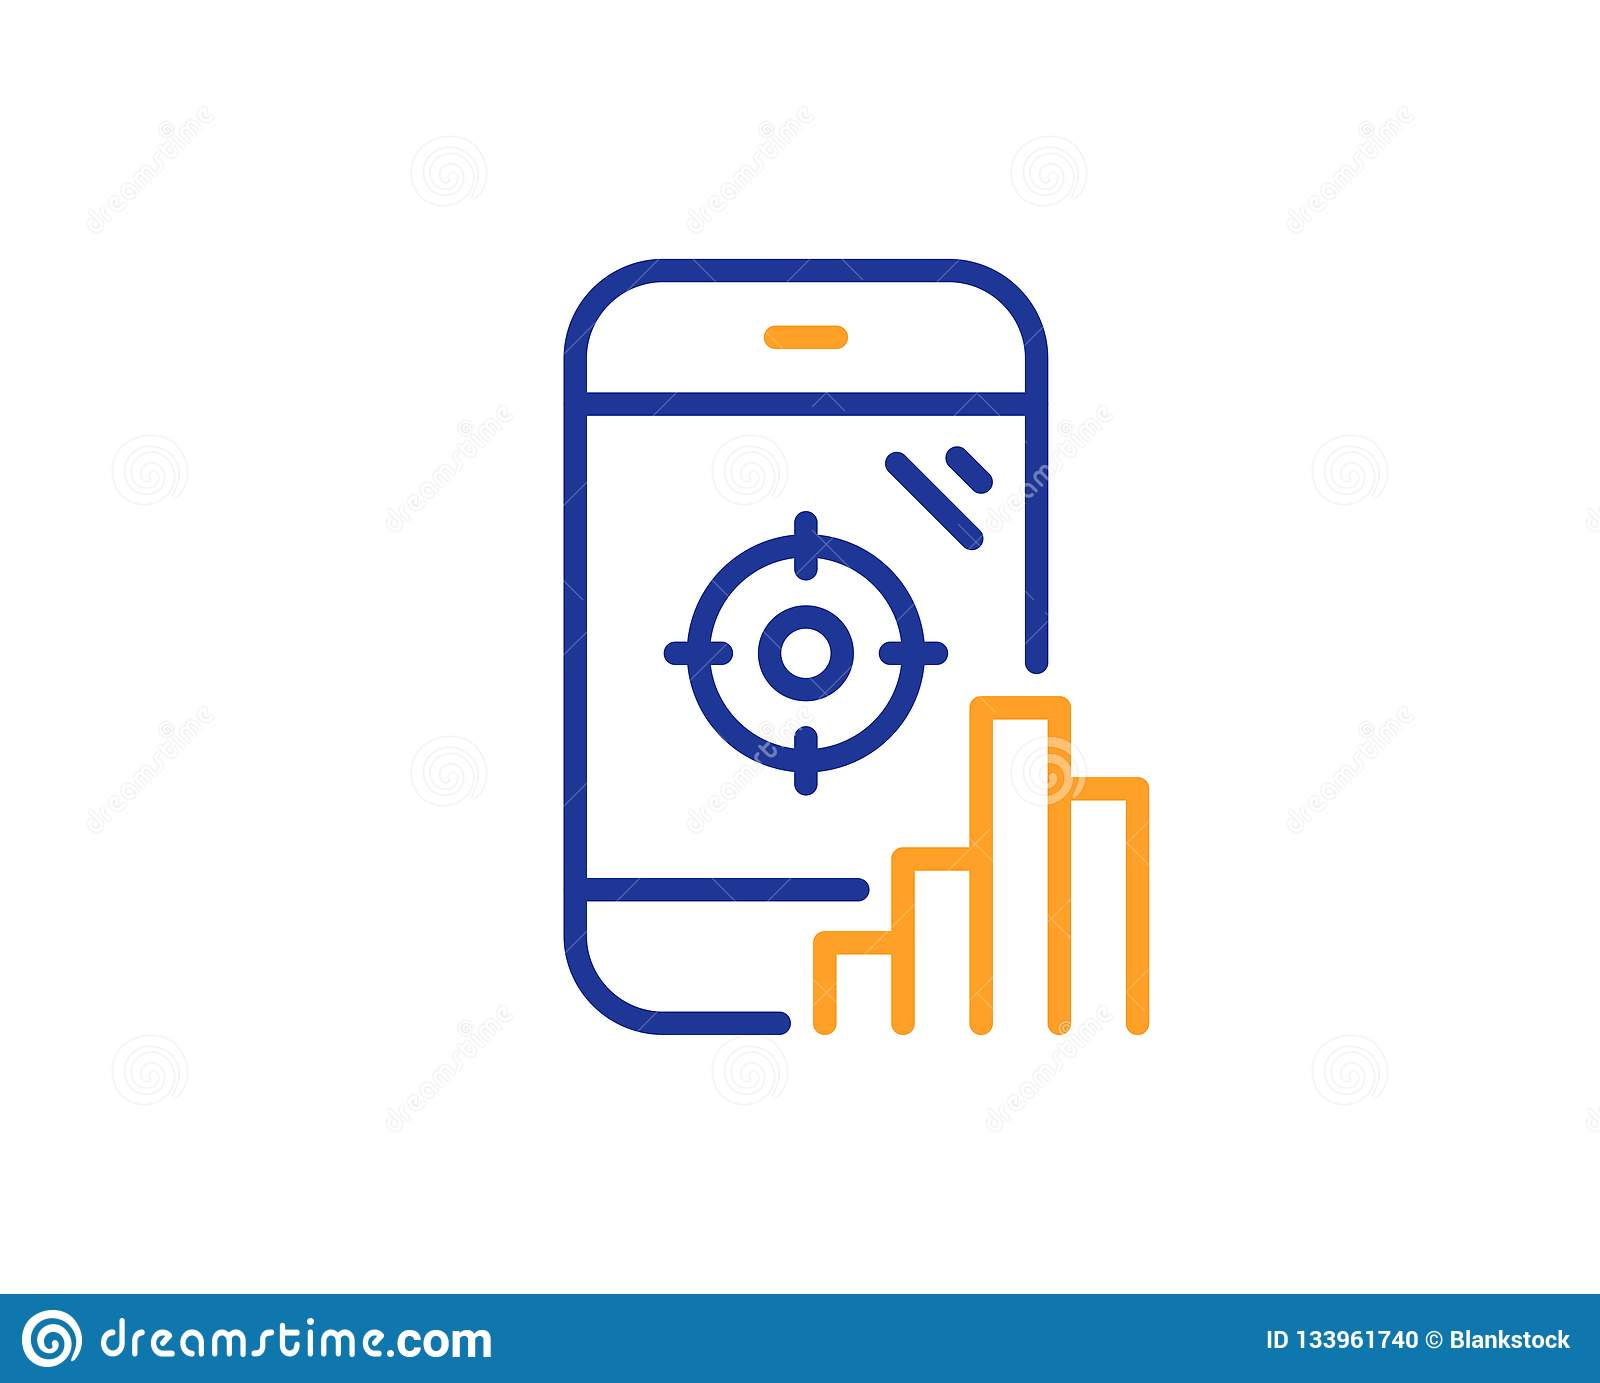 hight resolution of seo phone line icon search engine optimization sign aim target symbol colorful outline concept blue and orange thin line color seo phone icon vector